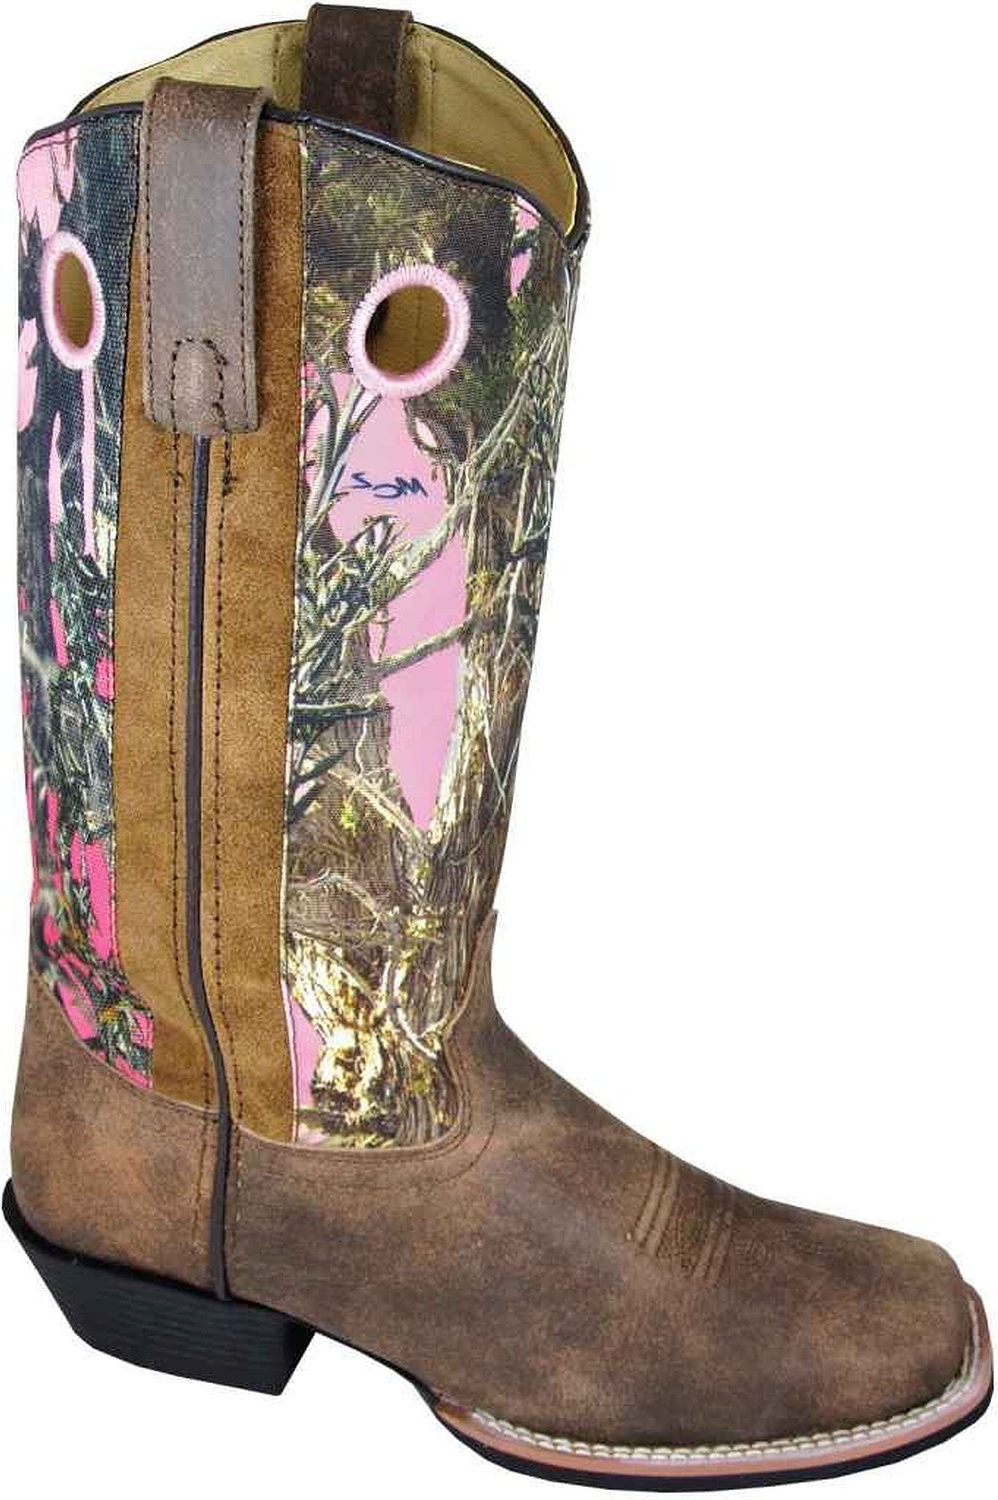 Womens cowboy boots, USA Made Cowboy Boots for Women